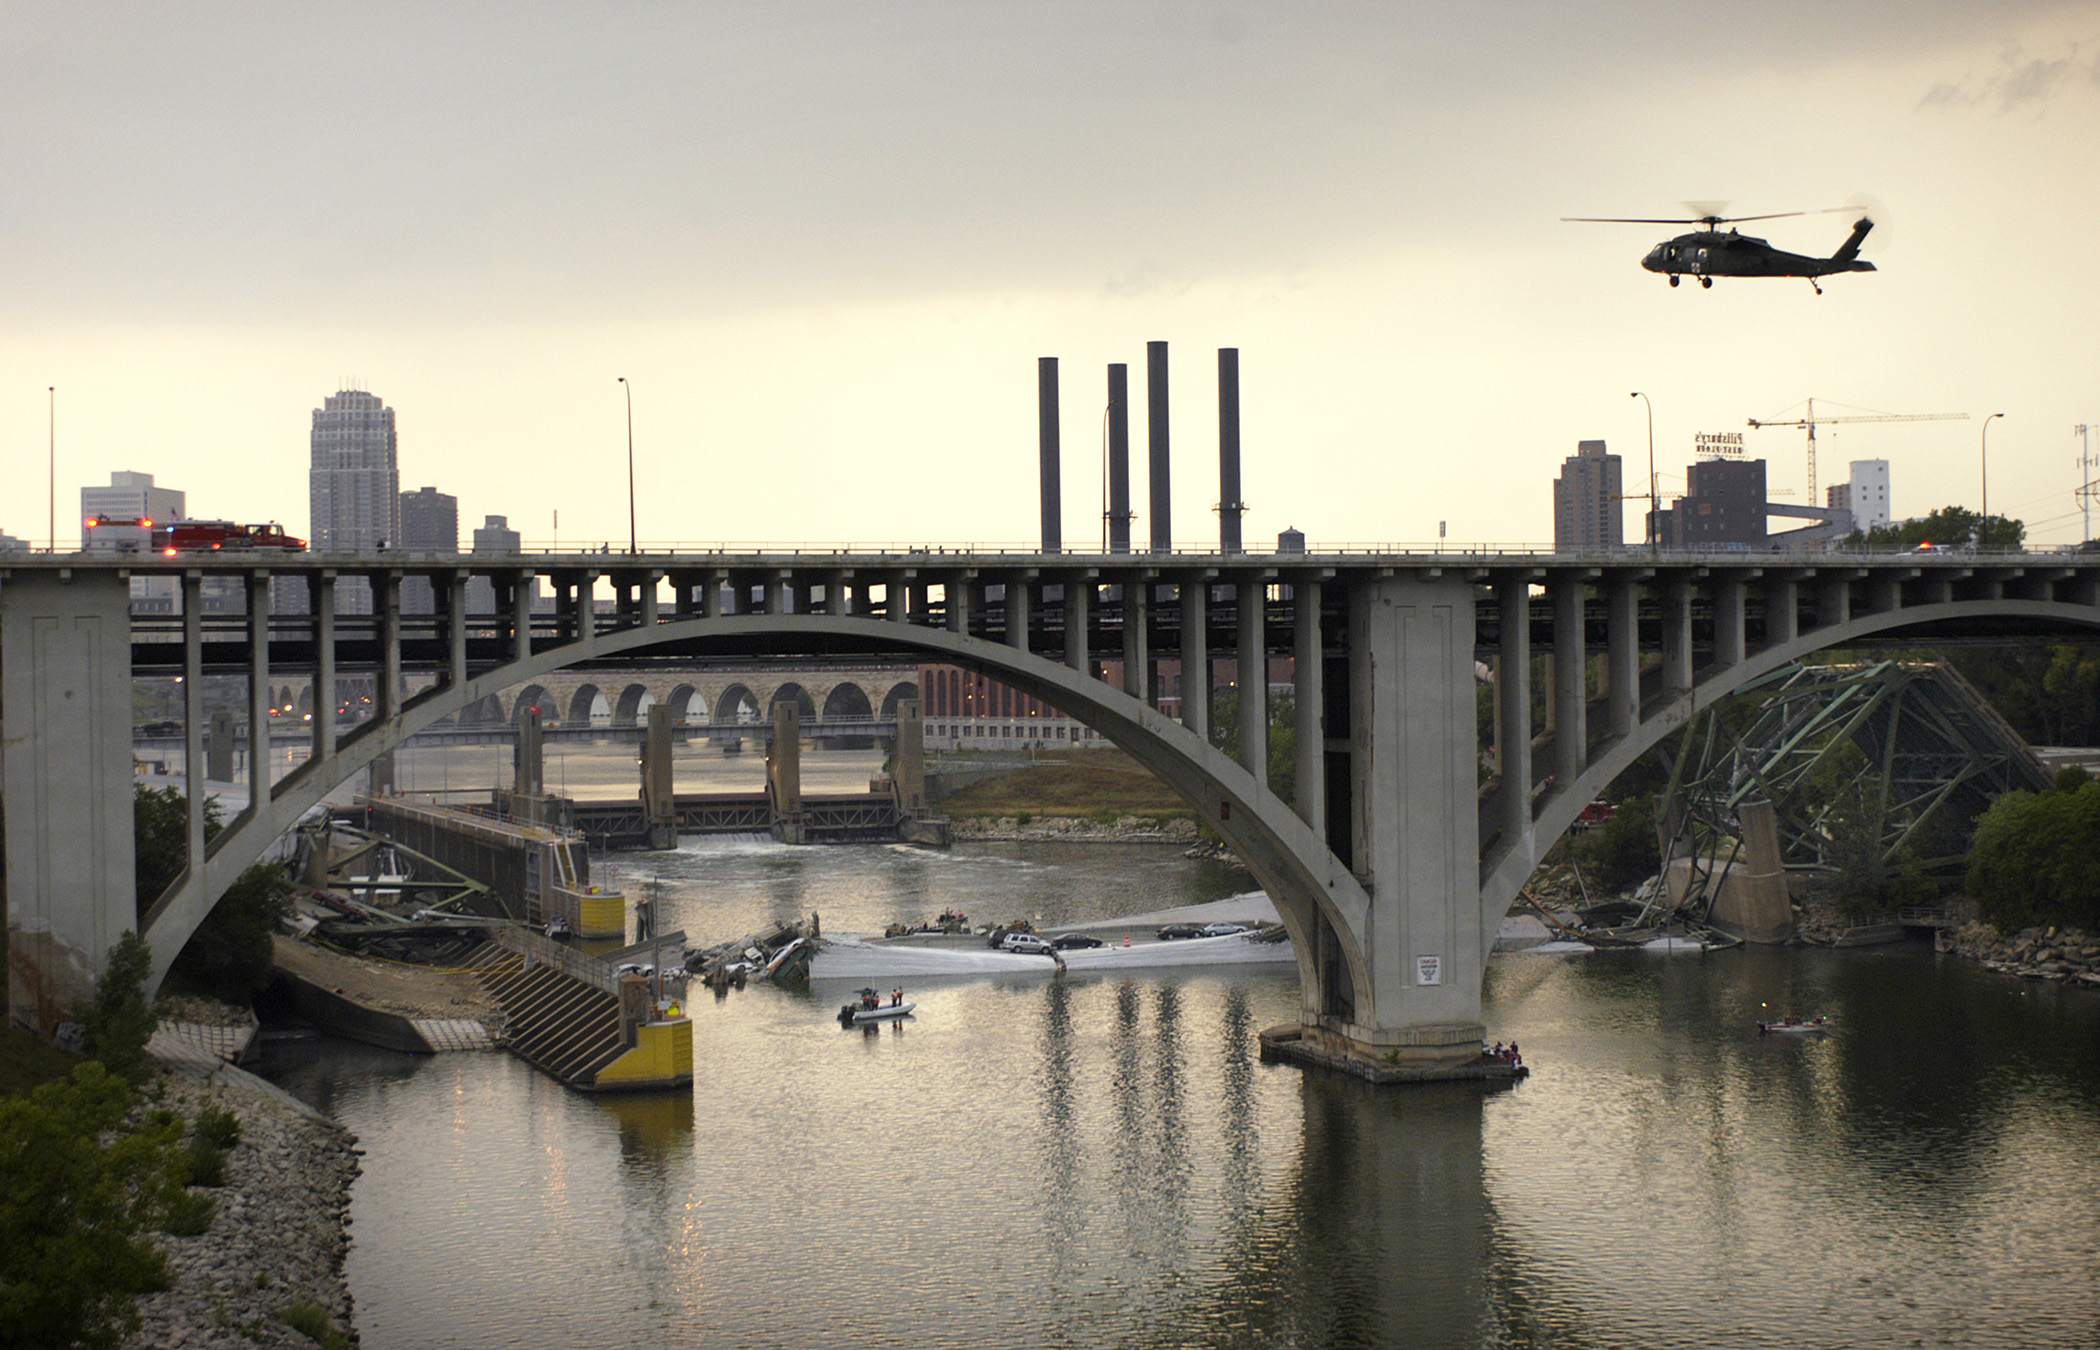 A helicopter lands on the 10th Avenue Bridge shortly after the 35W Bridge collapsed into the Mississippi River on August 1, 2007 in Minneapolis, MN.